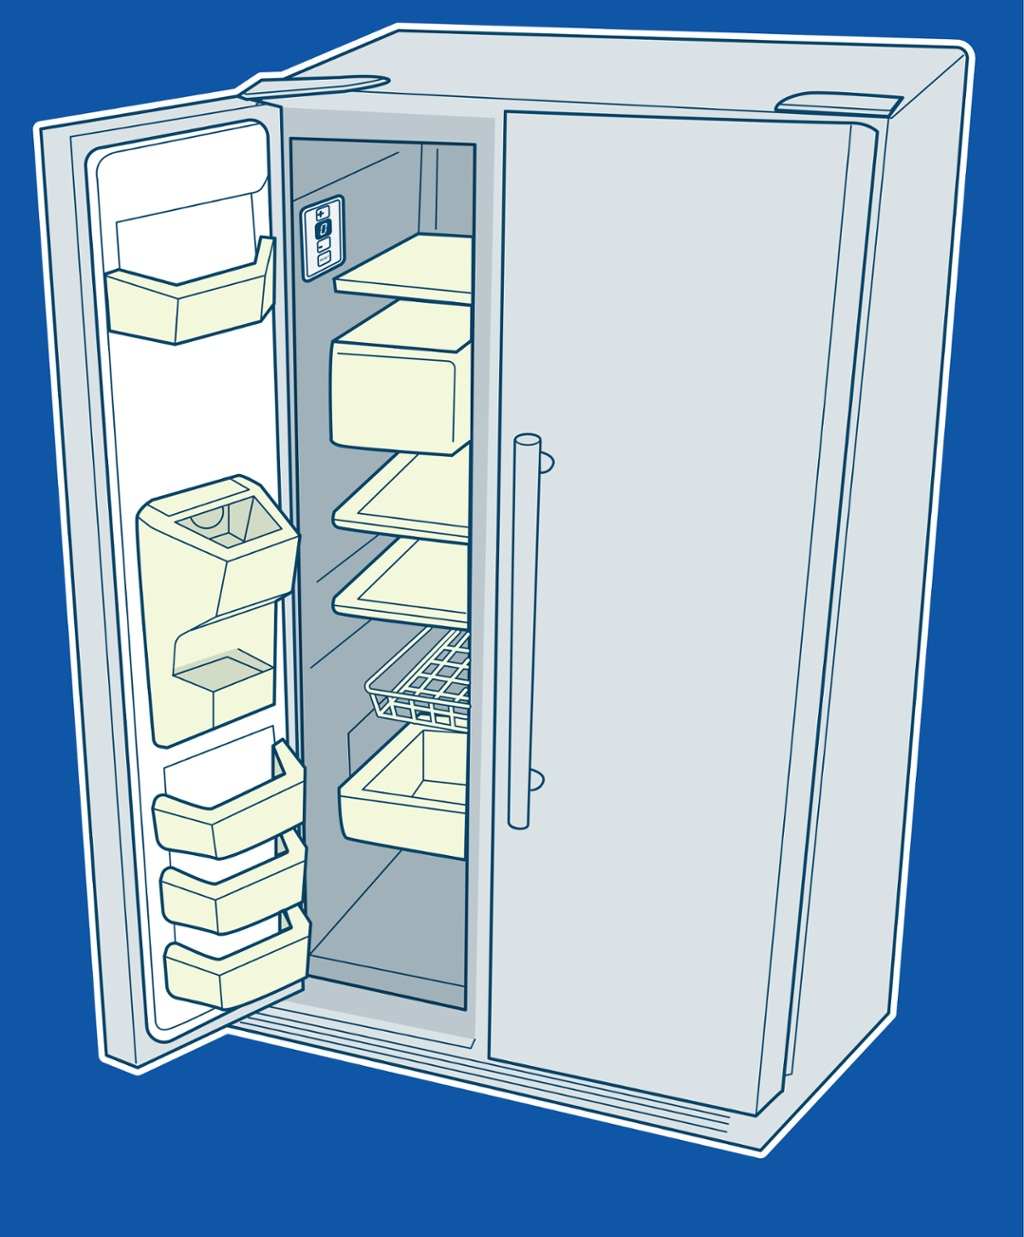 5 Most Common Freezer Problems and Solutions